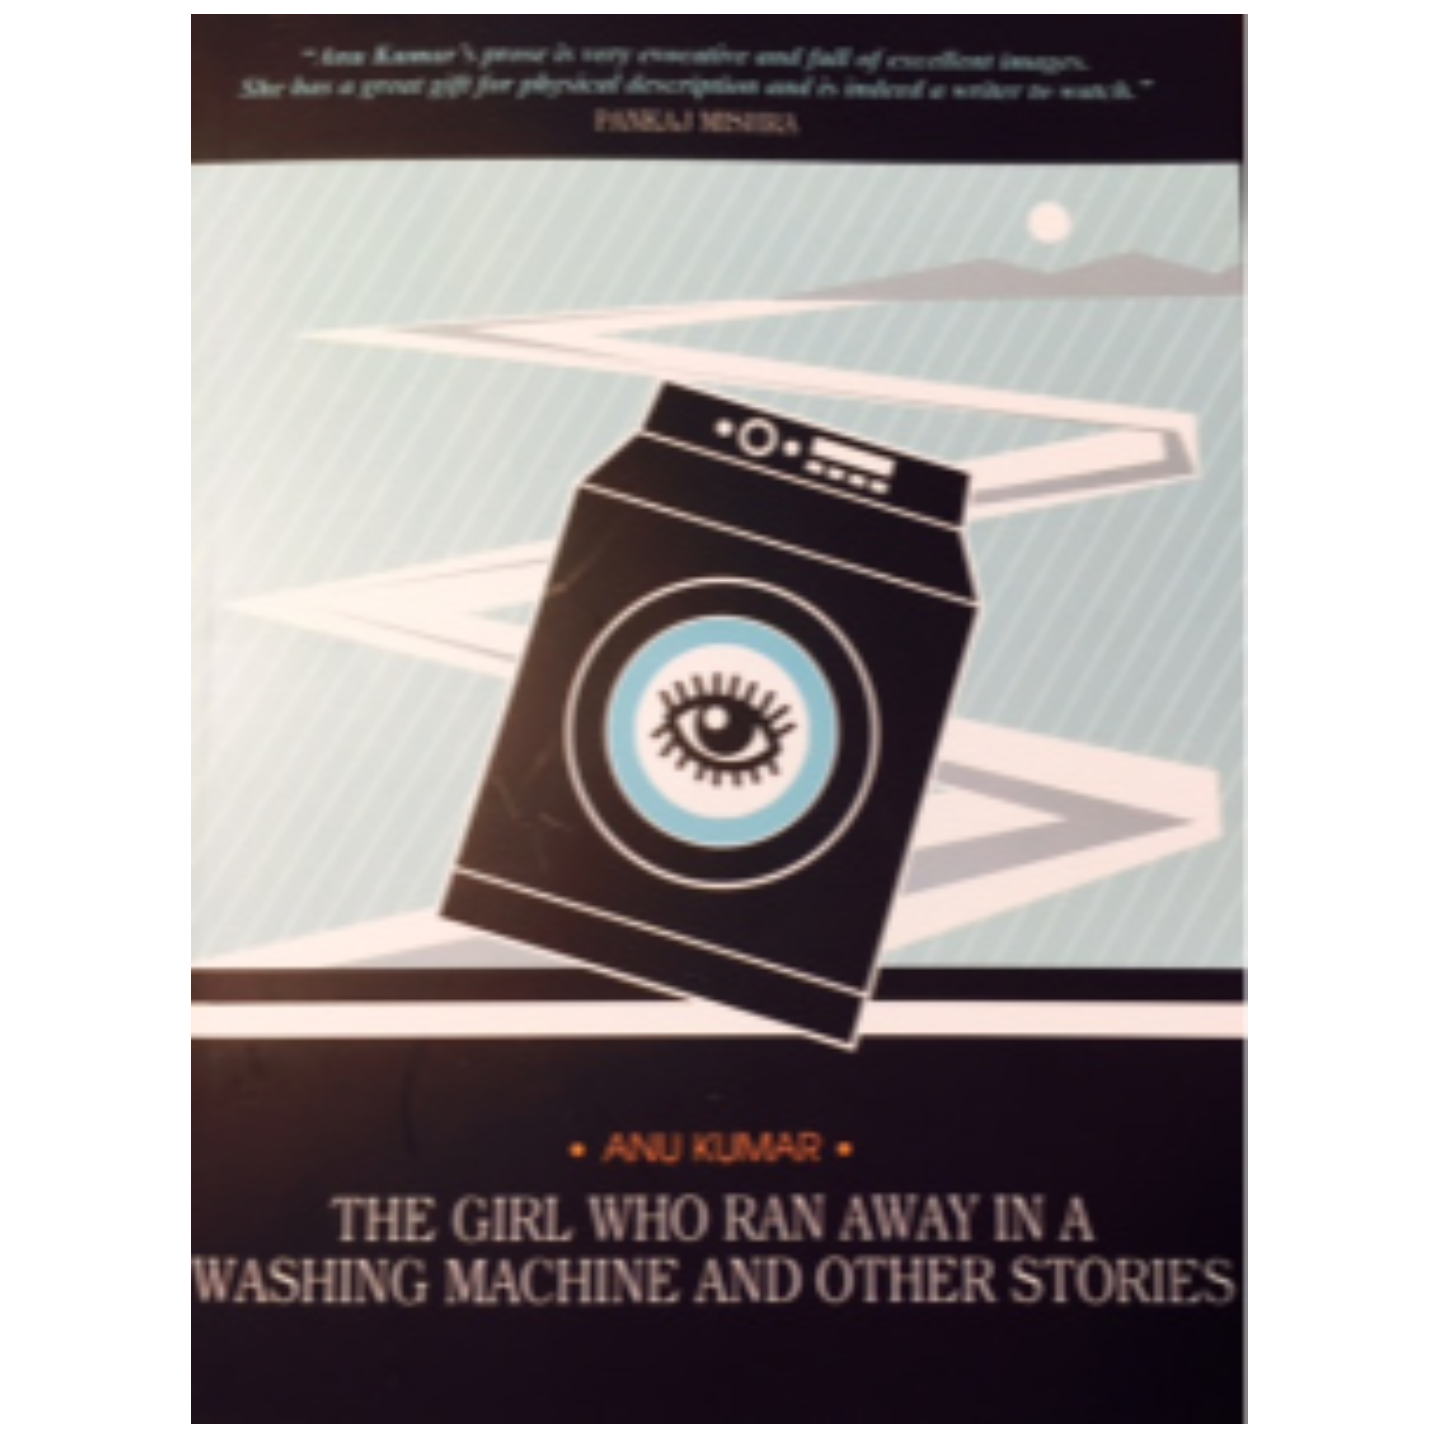 The Girl Who Ran Away in a Washing Machine and Other Stories by Anu Kumar